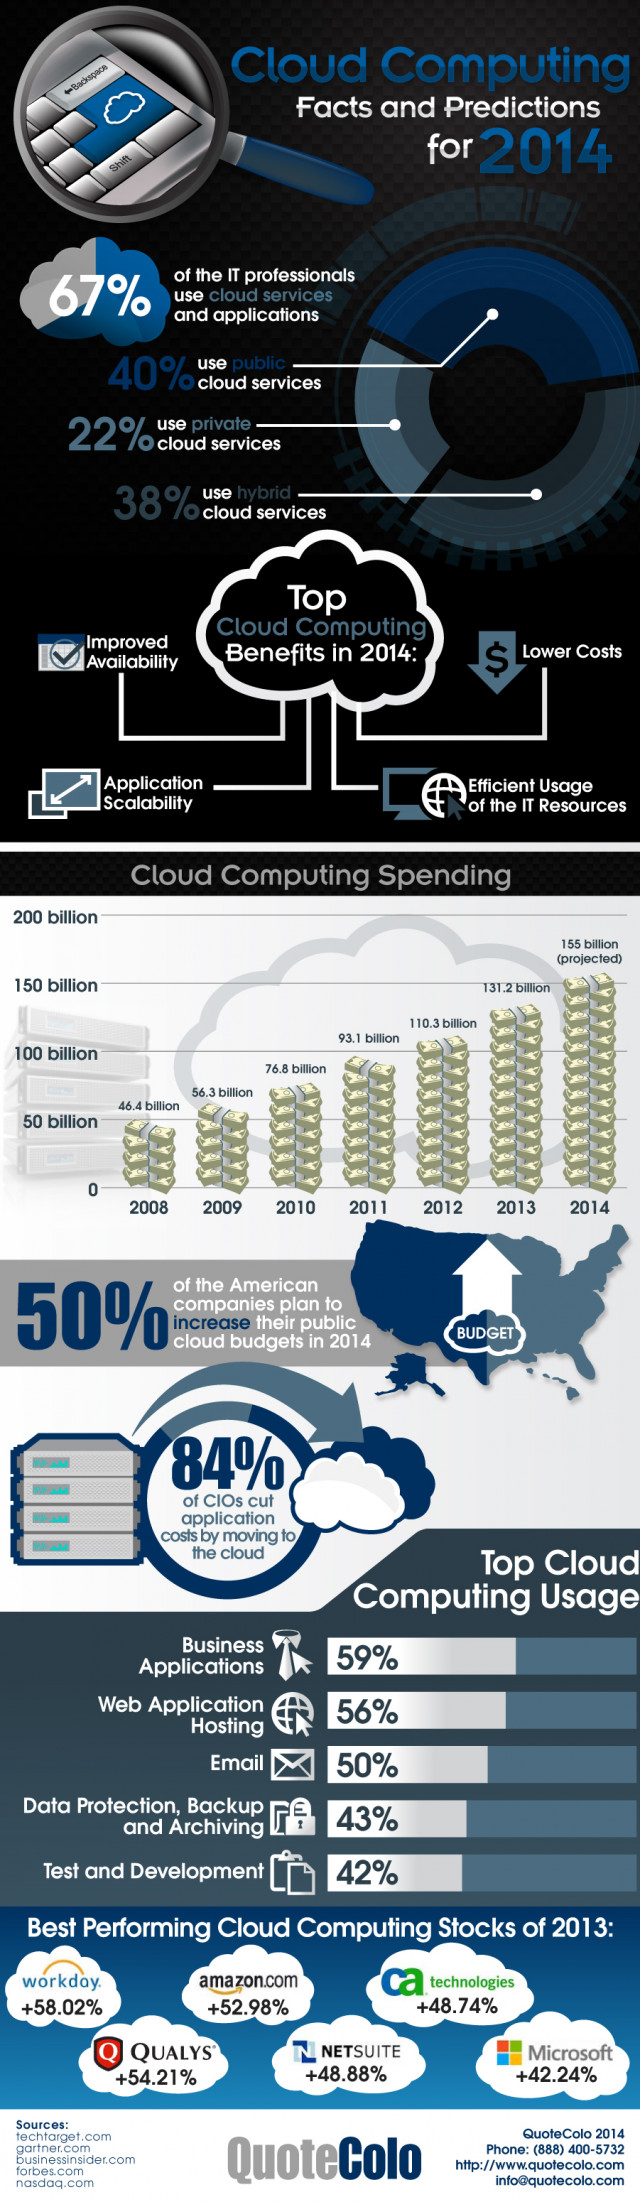 Cloud Computing: Facts and Predictions 2014